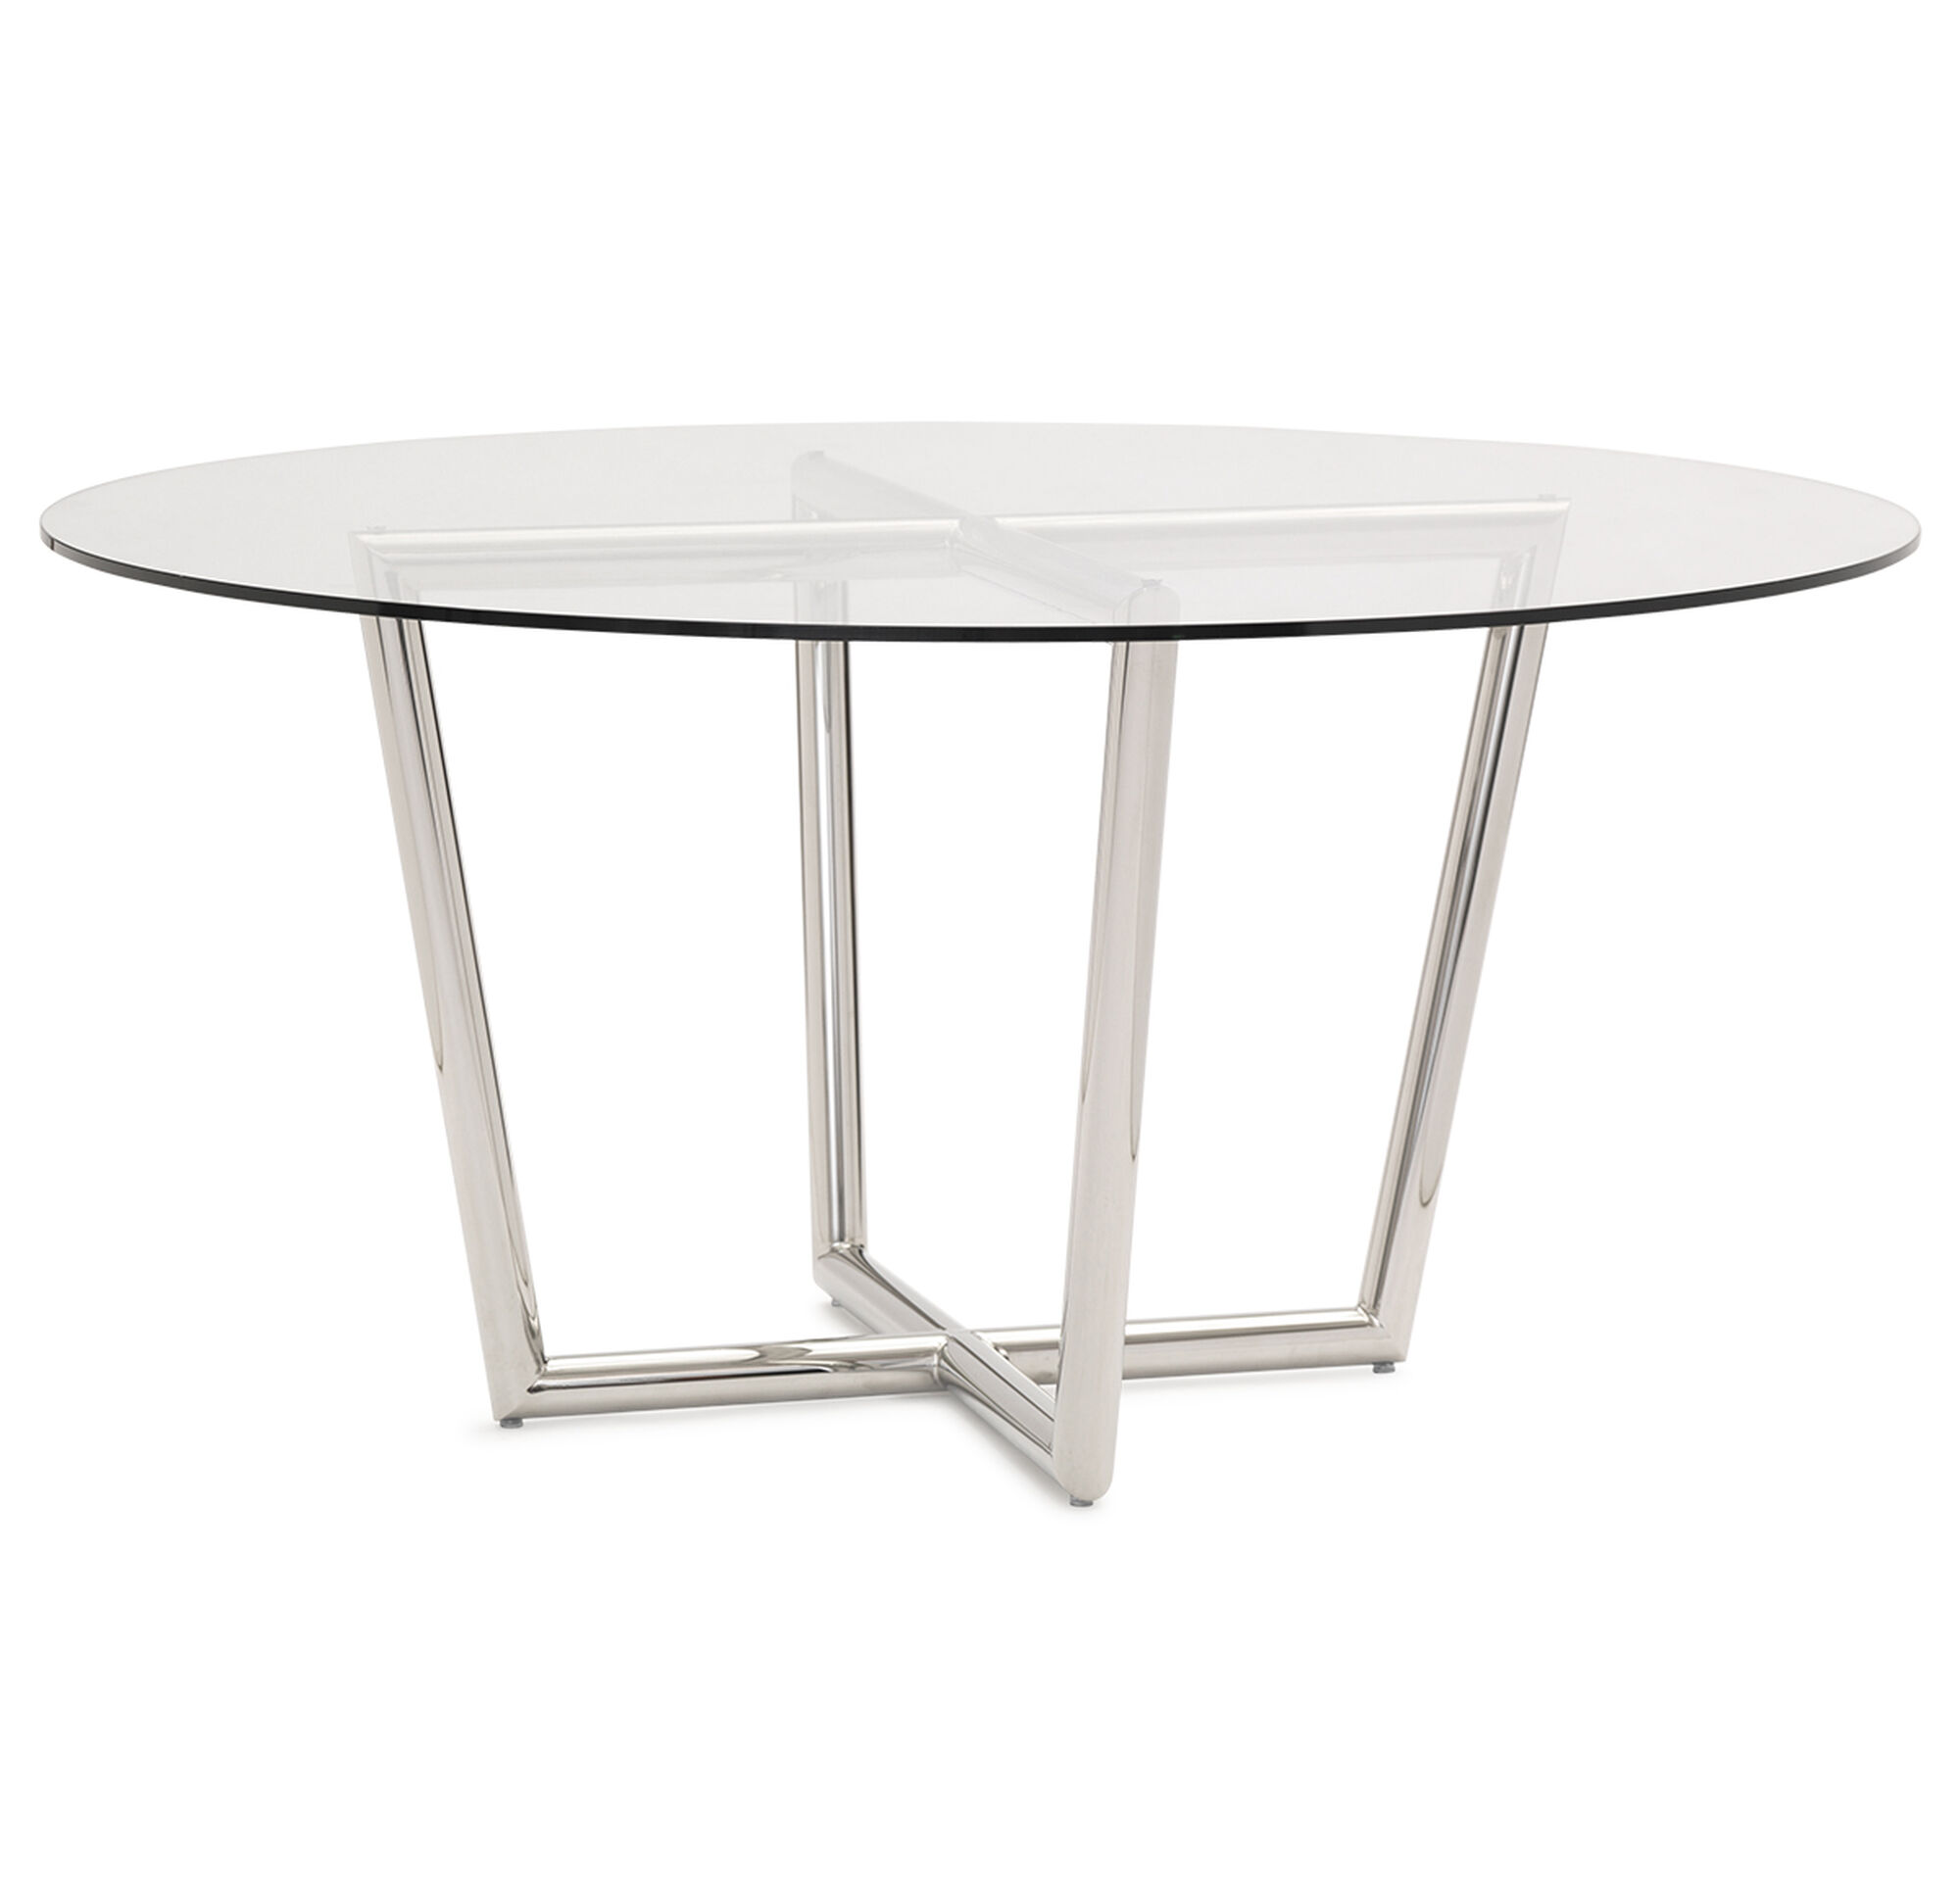 Modern round dining table polished stainless steel